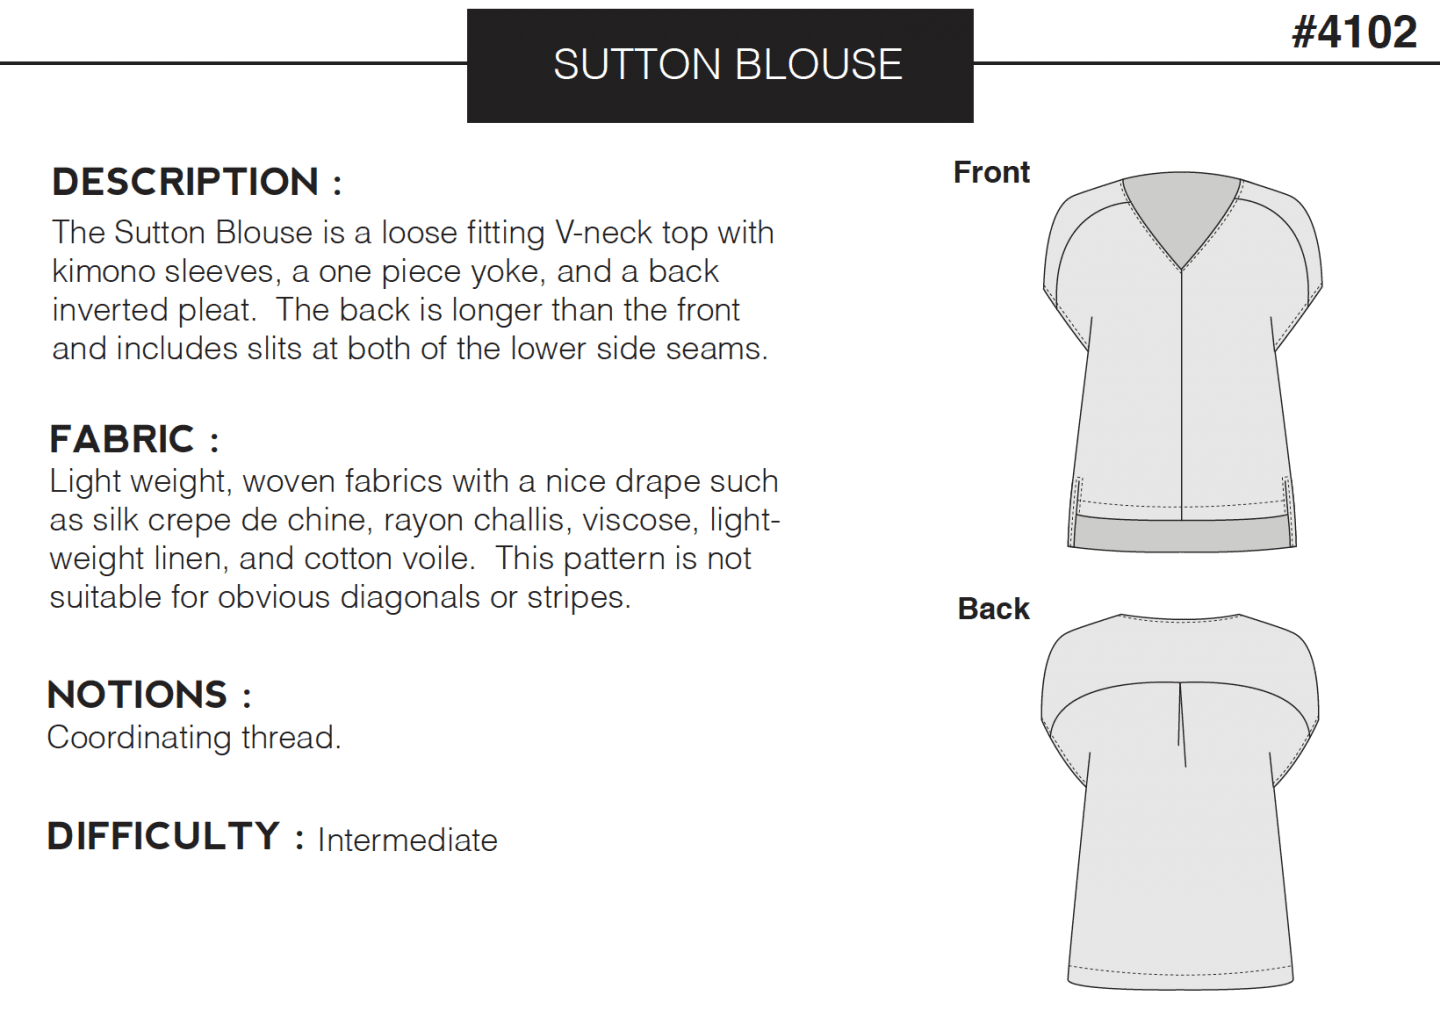 Image of the front and back line drawing of the Sutton Blouse